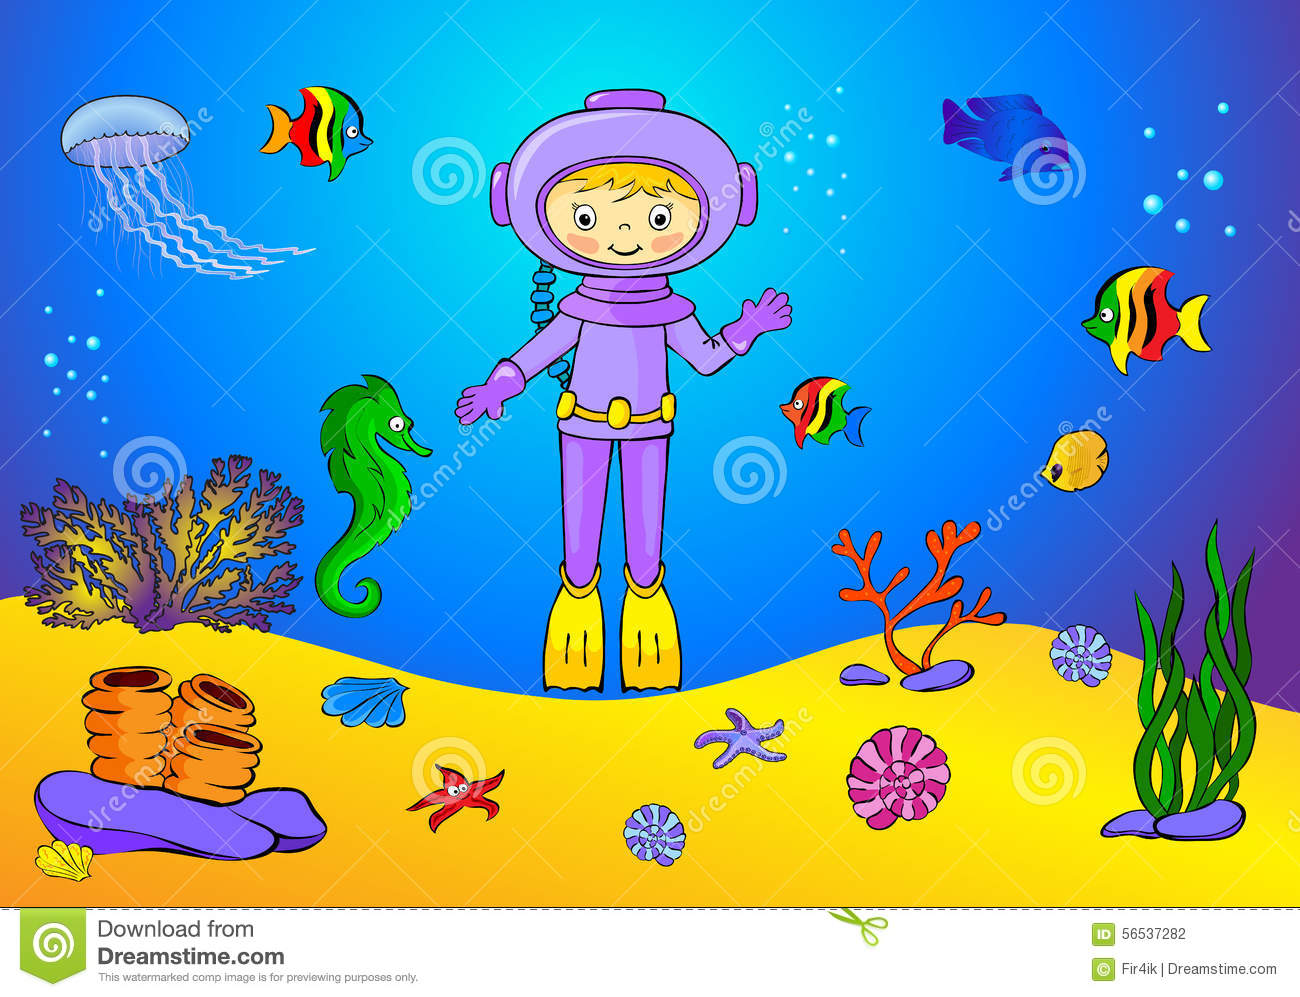 Cute cartoon scuba diver and fish under water. Seahorse, jellyfish, coral and starfish on the ocean floor.